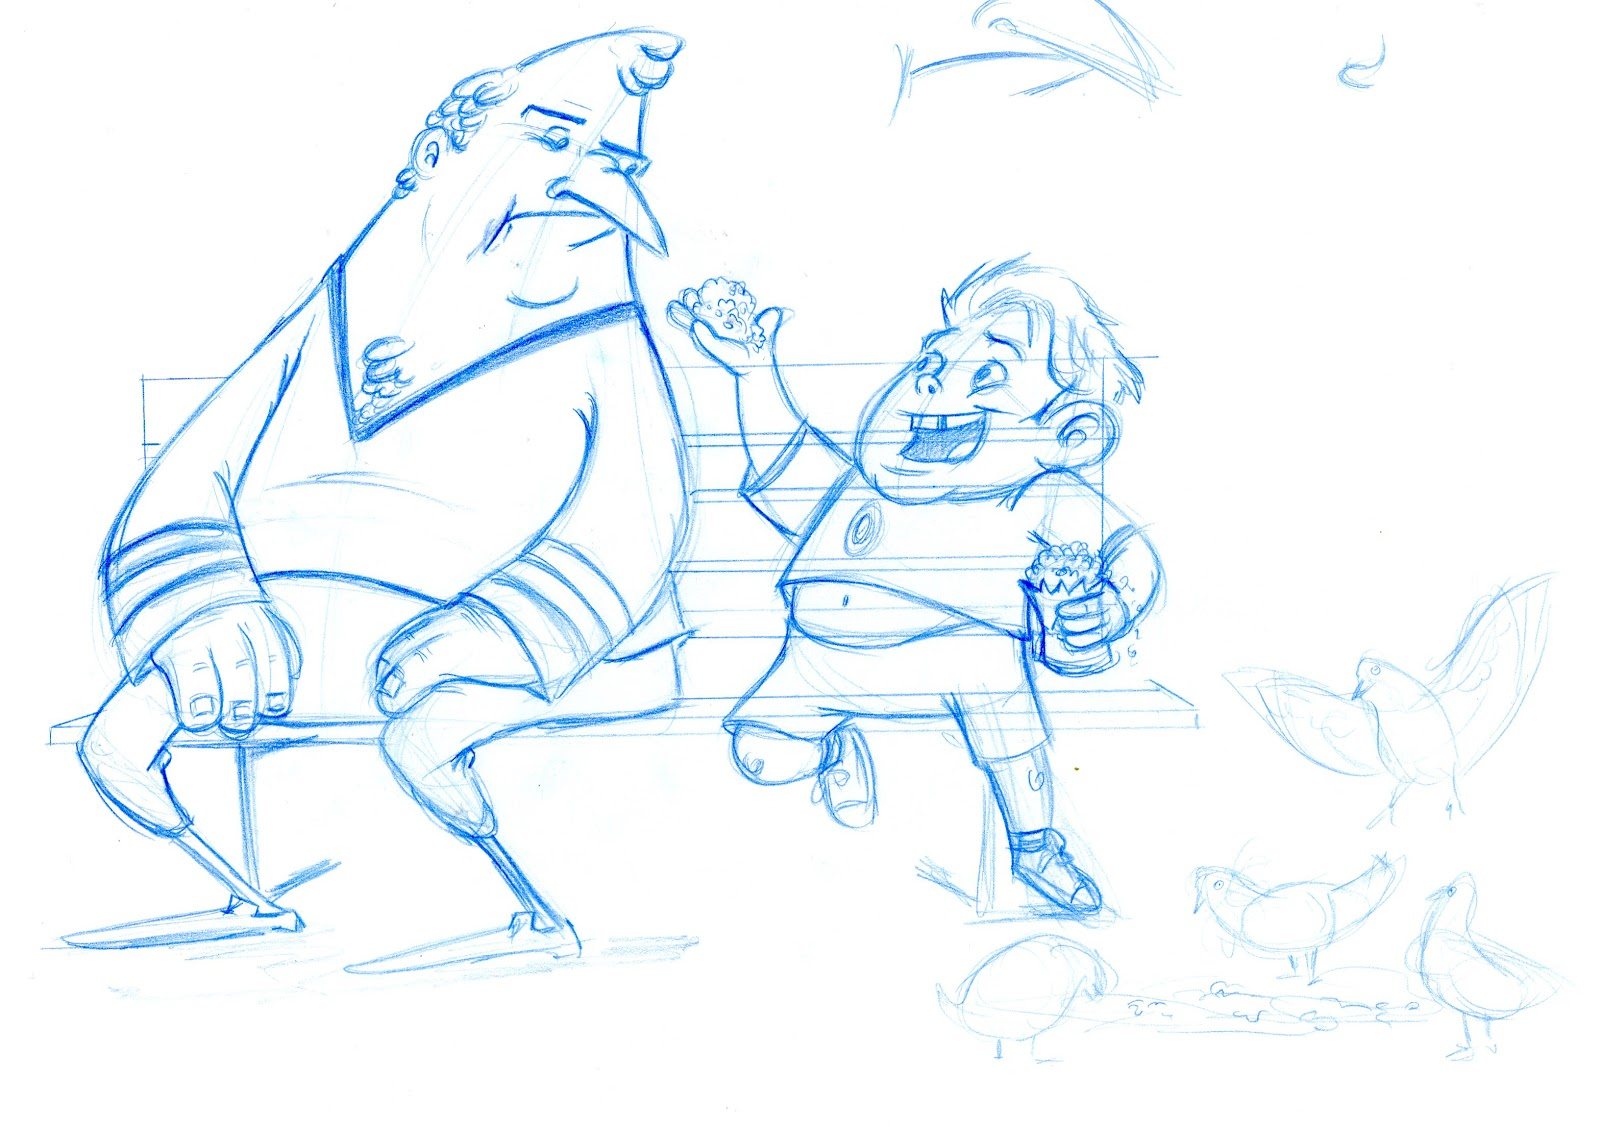 Character Design For Animation Class With Nate Wragg : Joe apel nate wragg character design class week